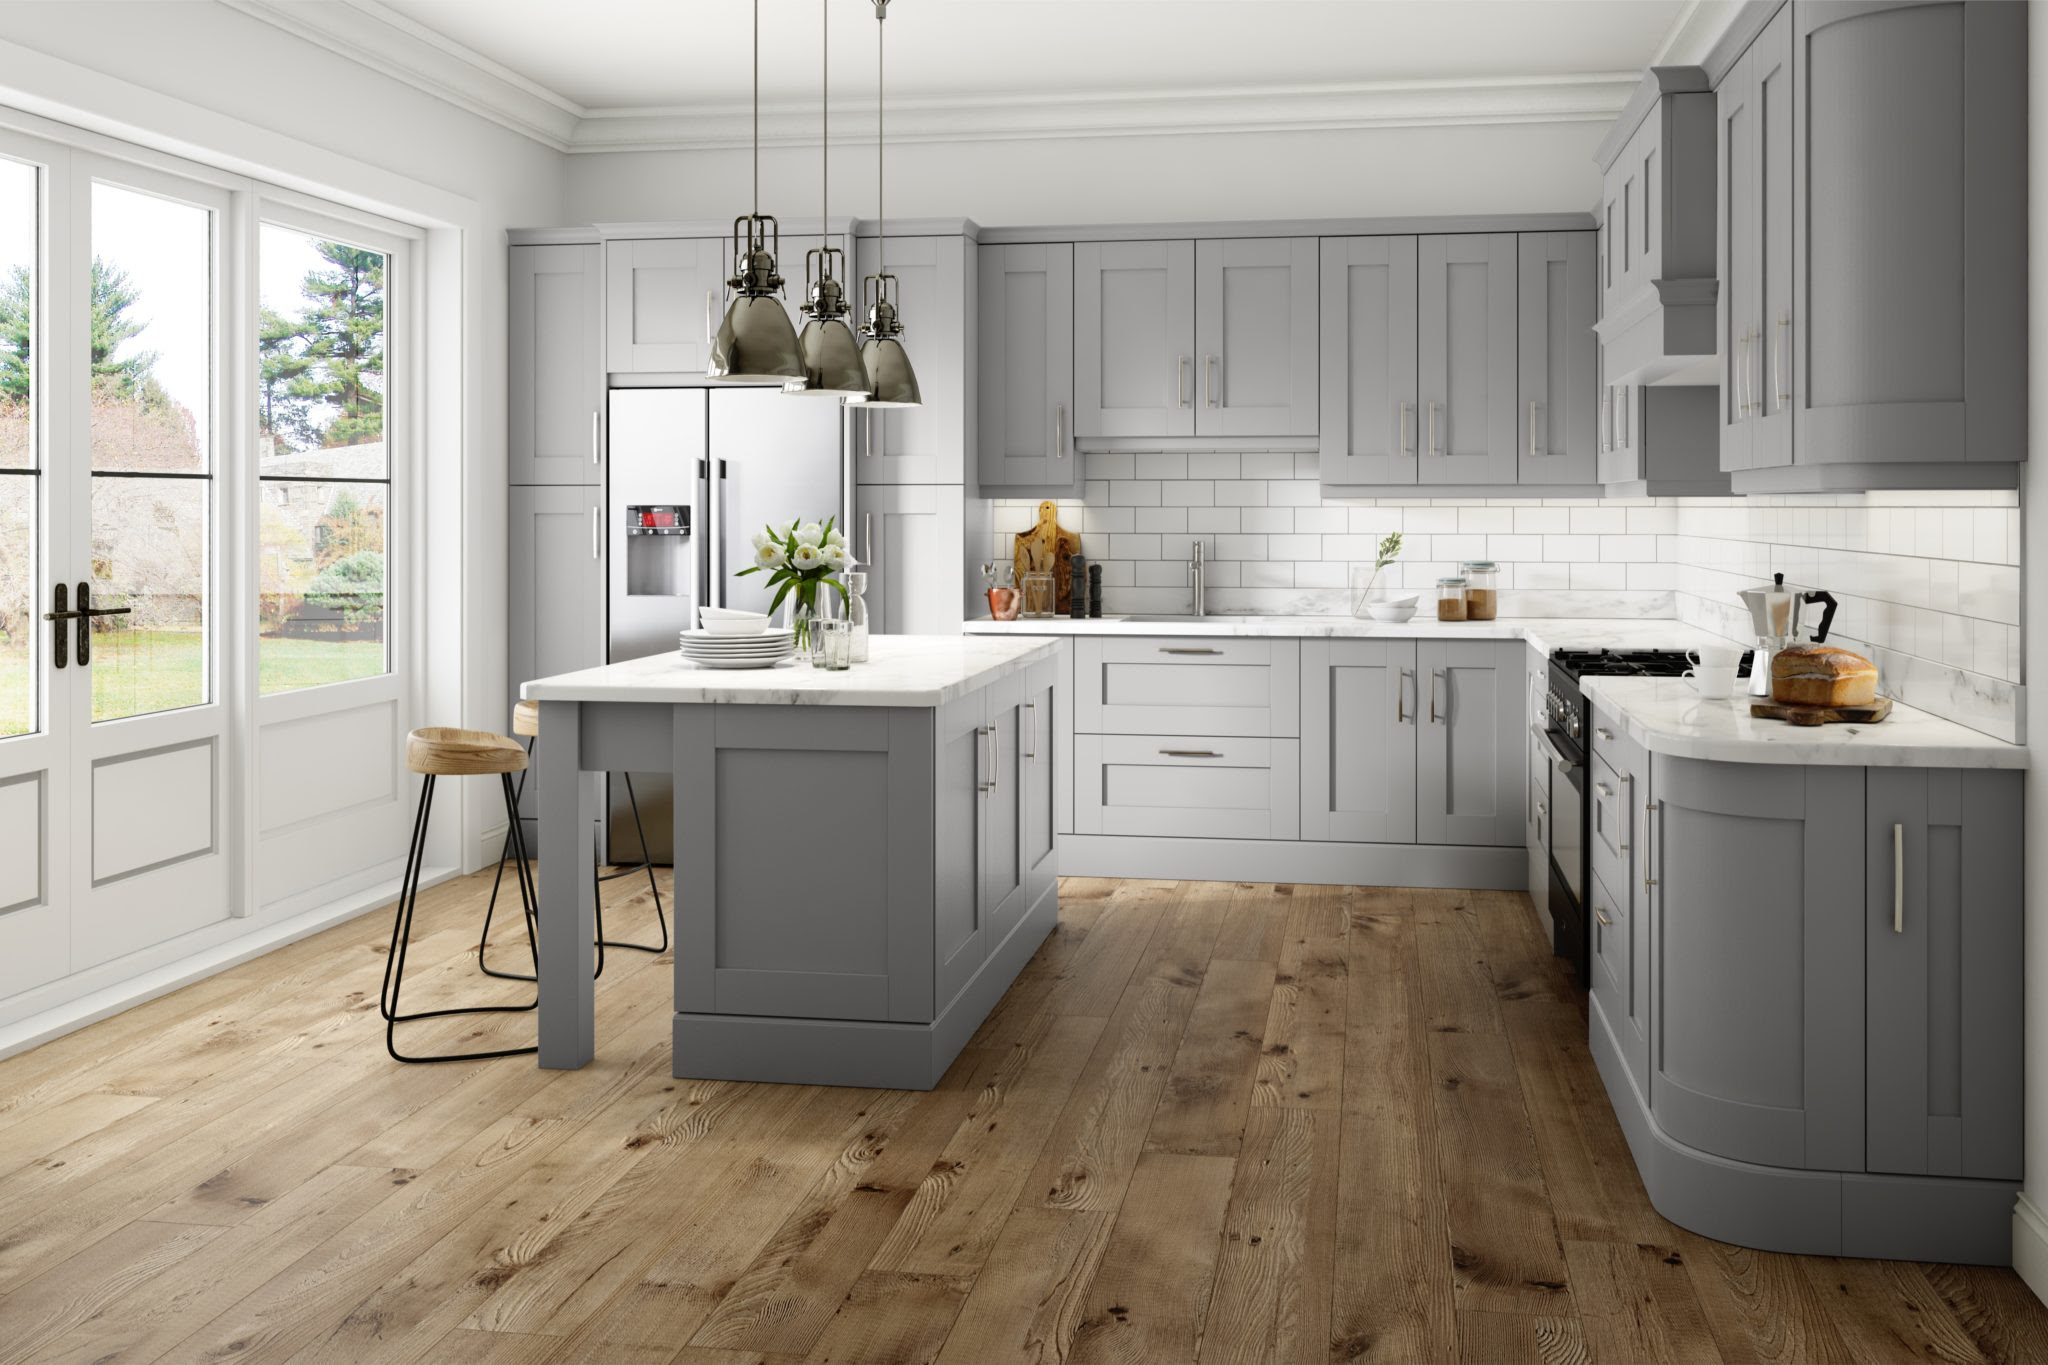 Made to Measure Kitchens  Kitchen Door Replacement  Bespoke Kitchens  Think Kitchens